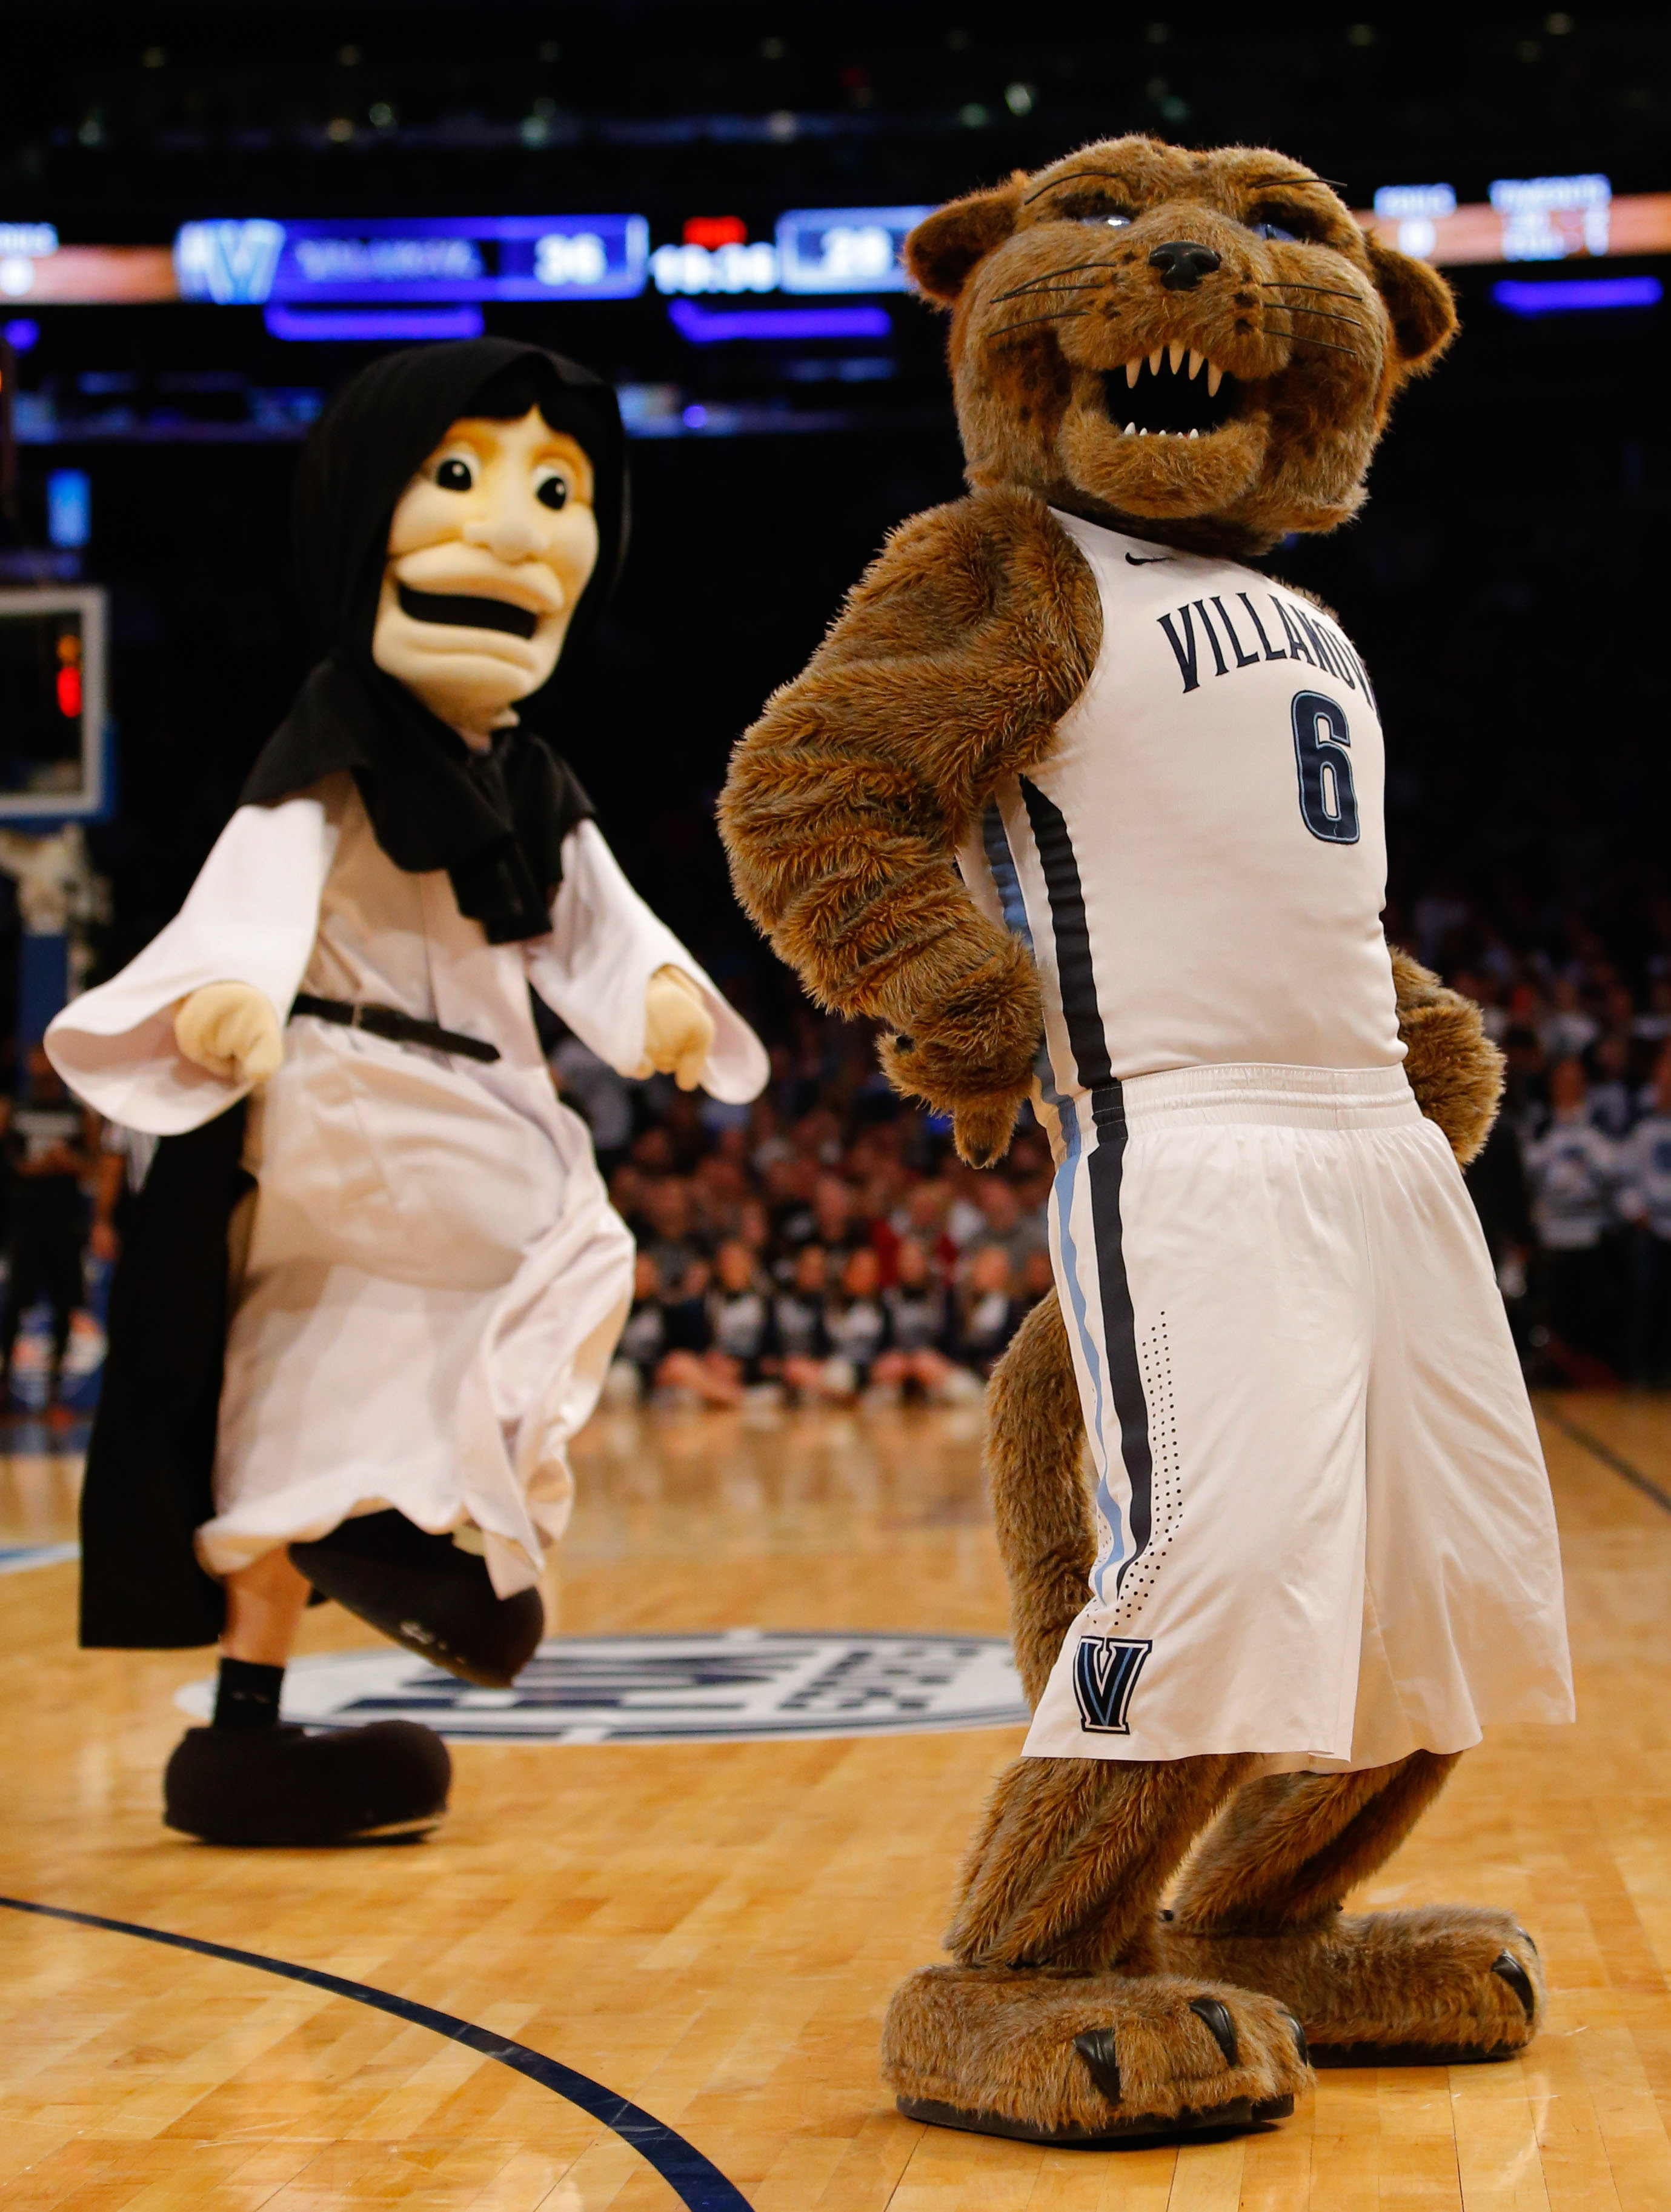 That is one scary looking Friar.